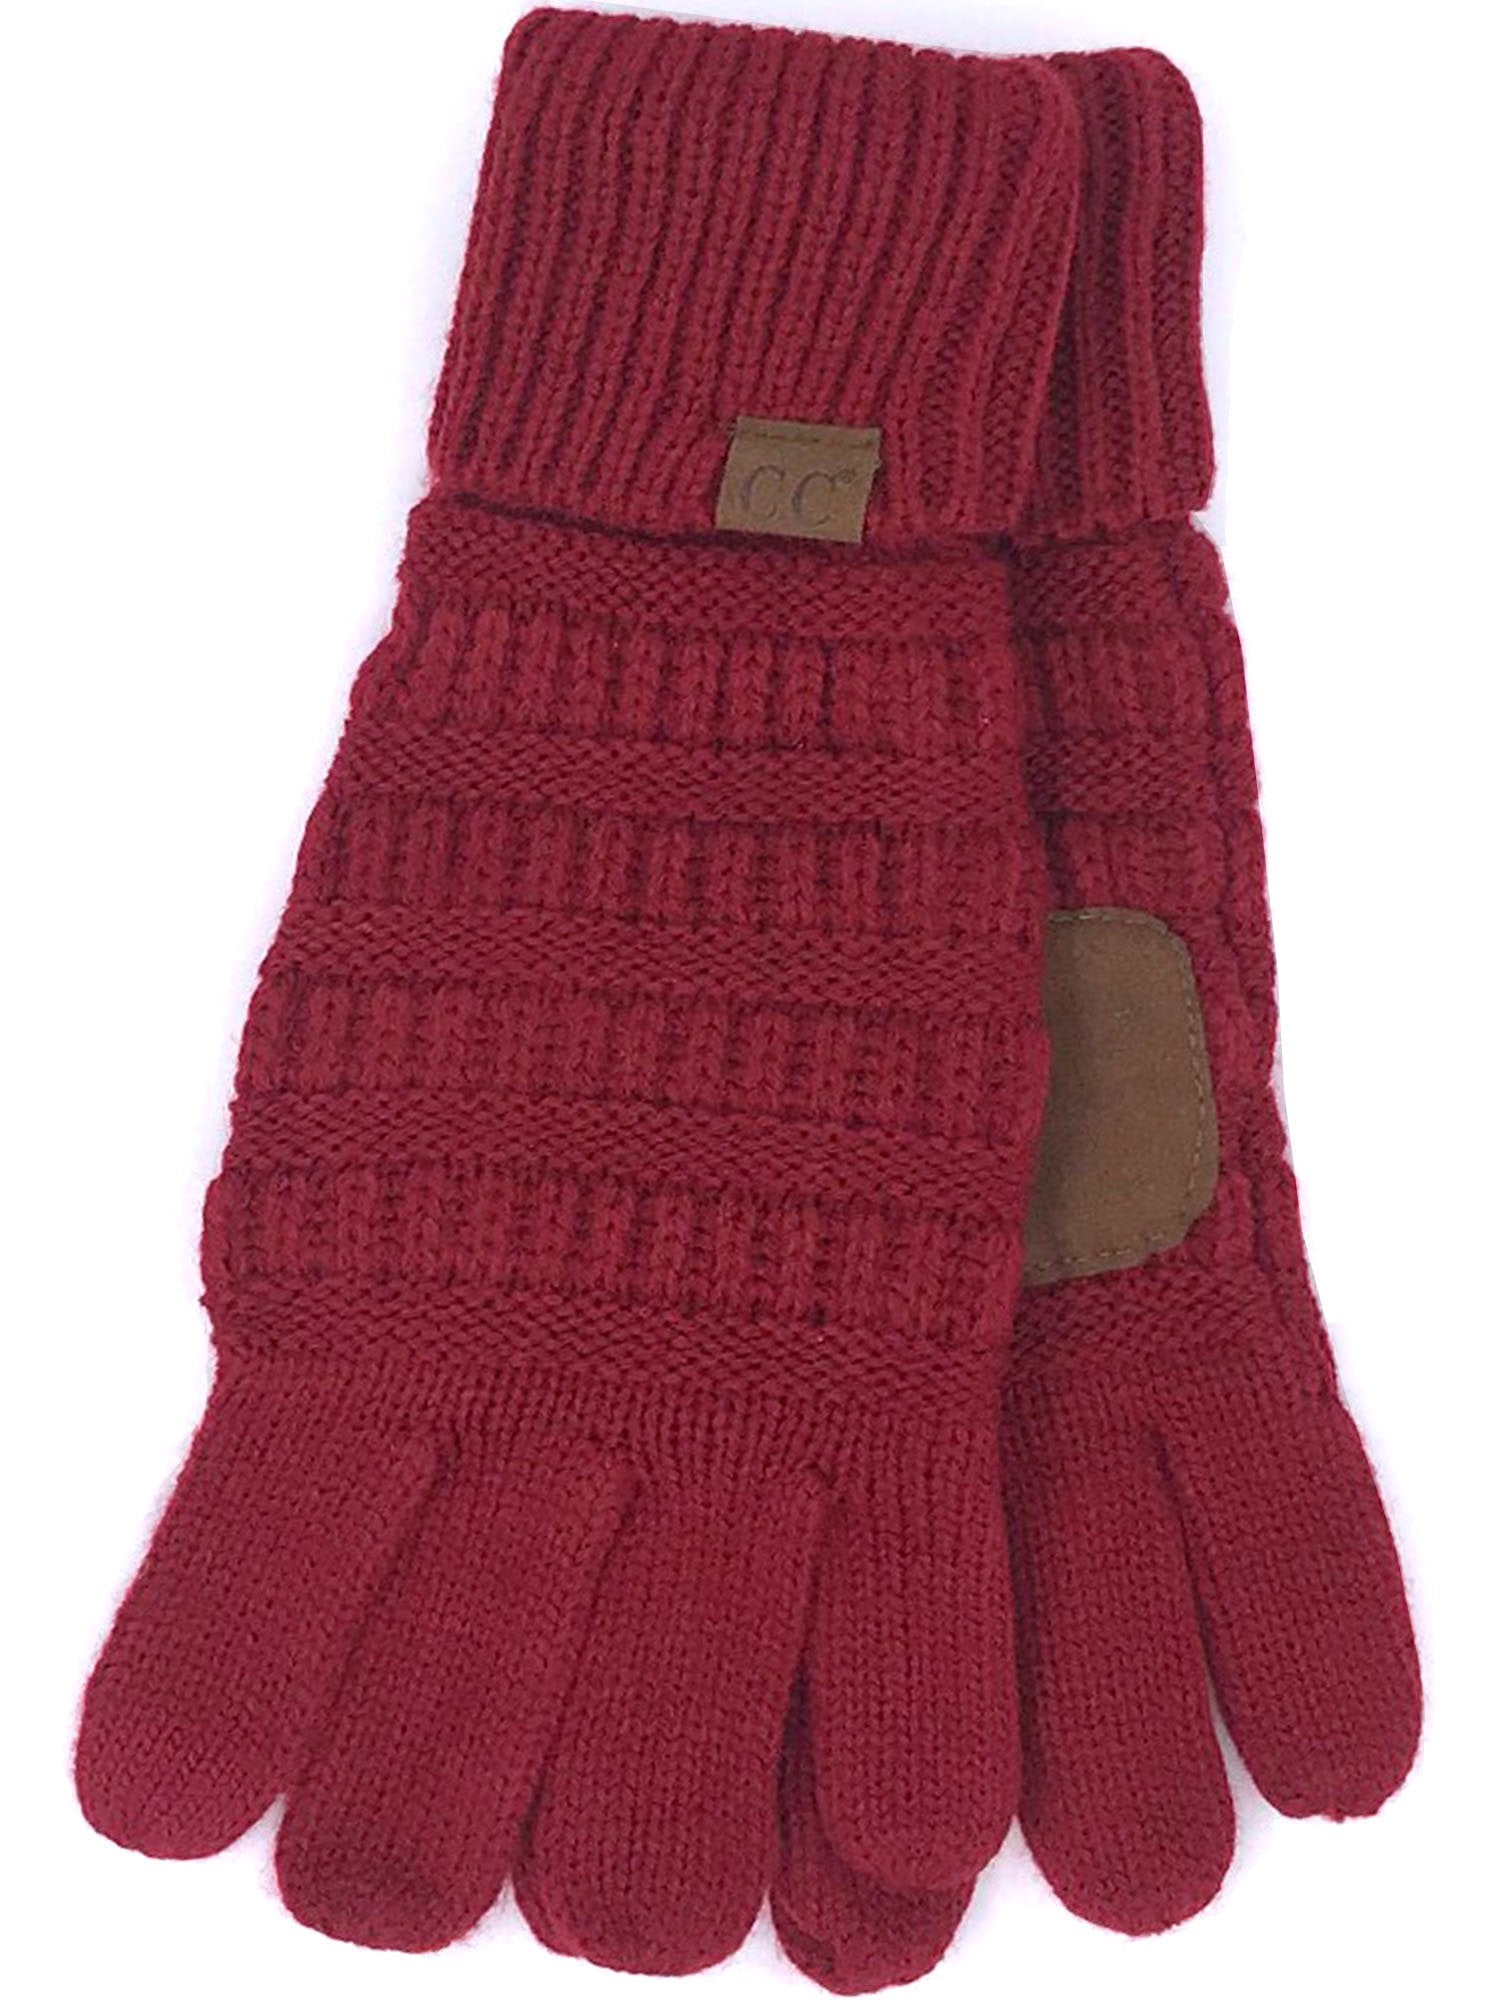 C.C GL-20 Burgundy Gloves